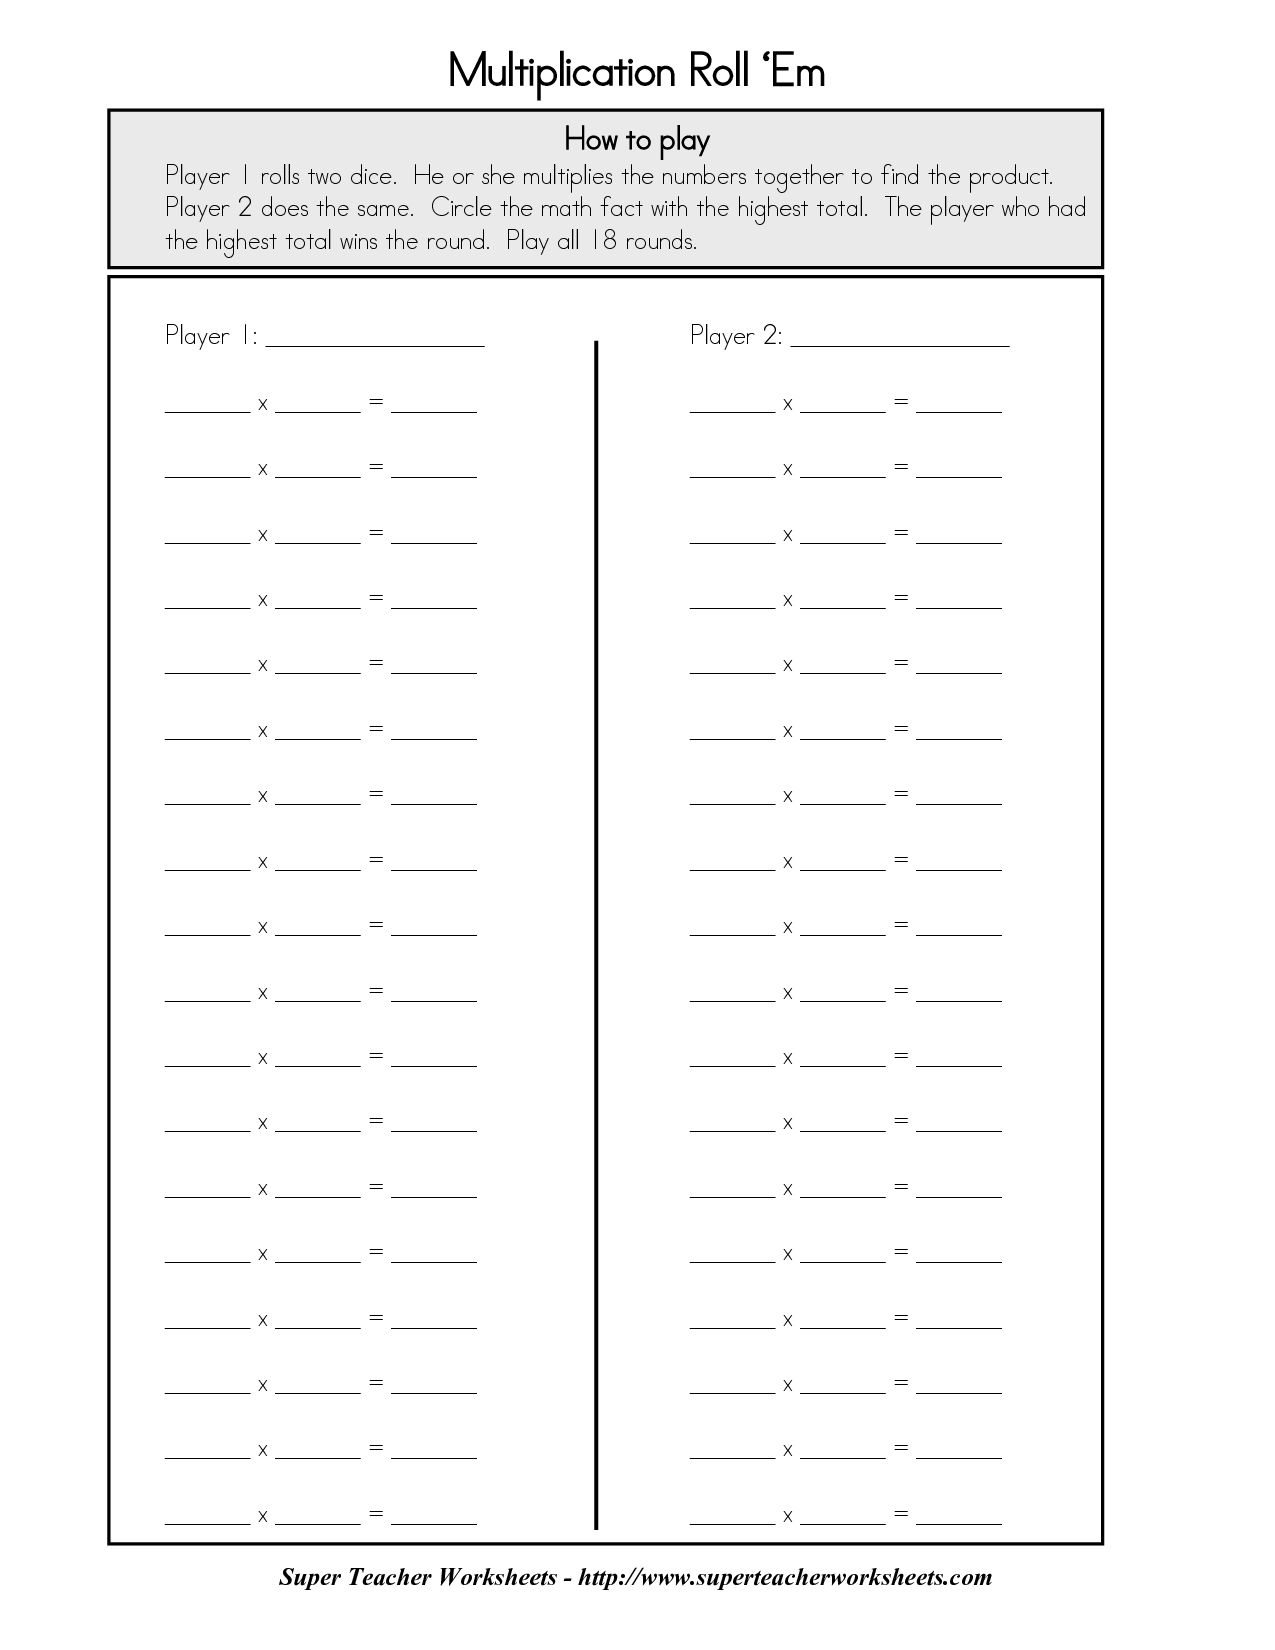 14 Best Images Of Super Teacher Worksheets Multiplication